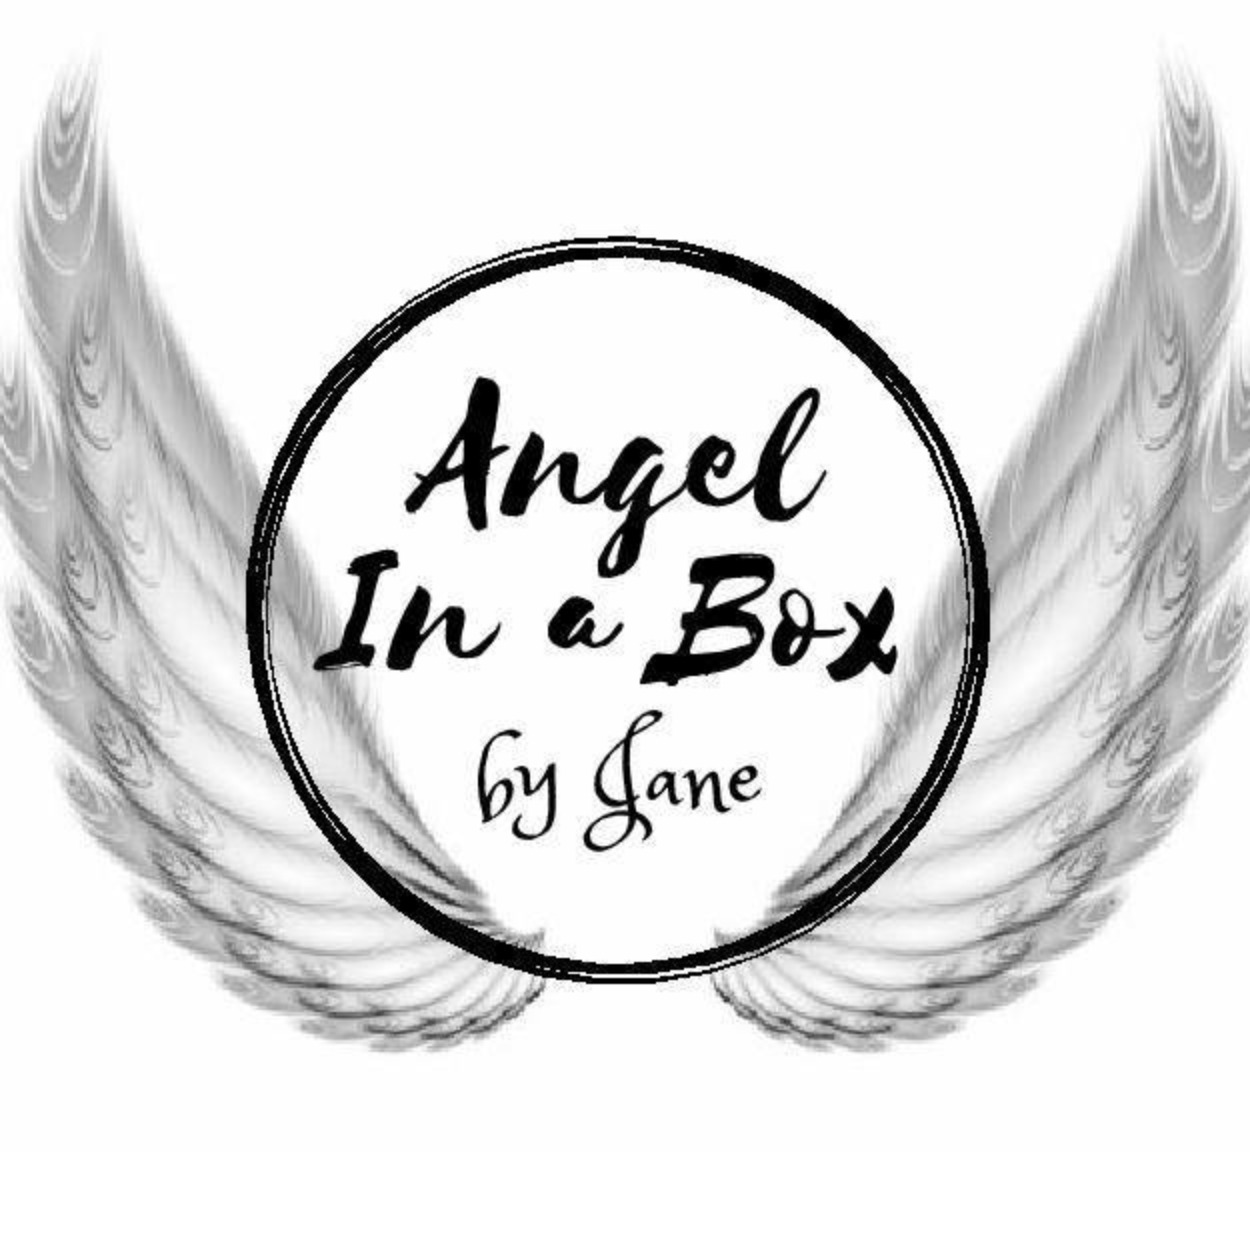 Angels by Jane